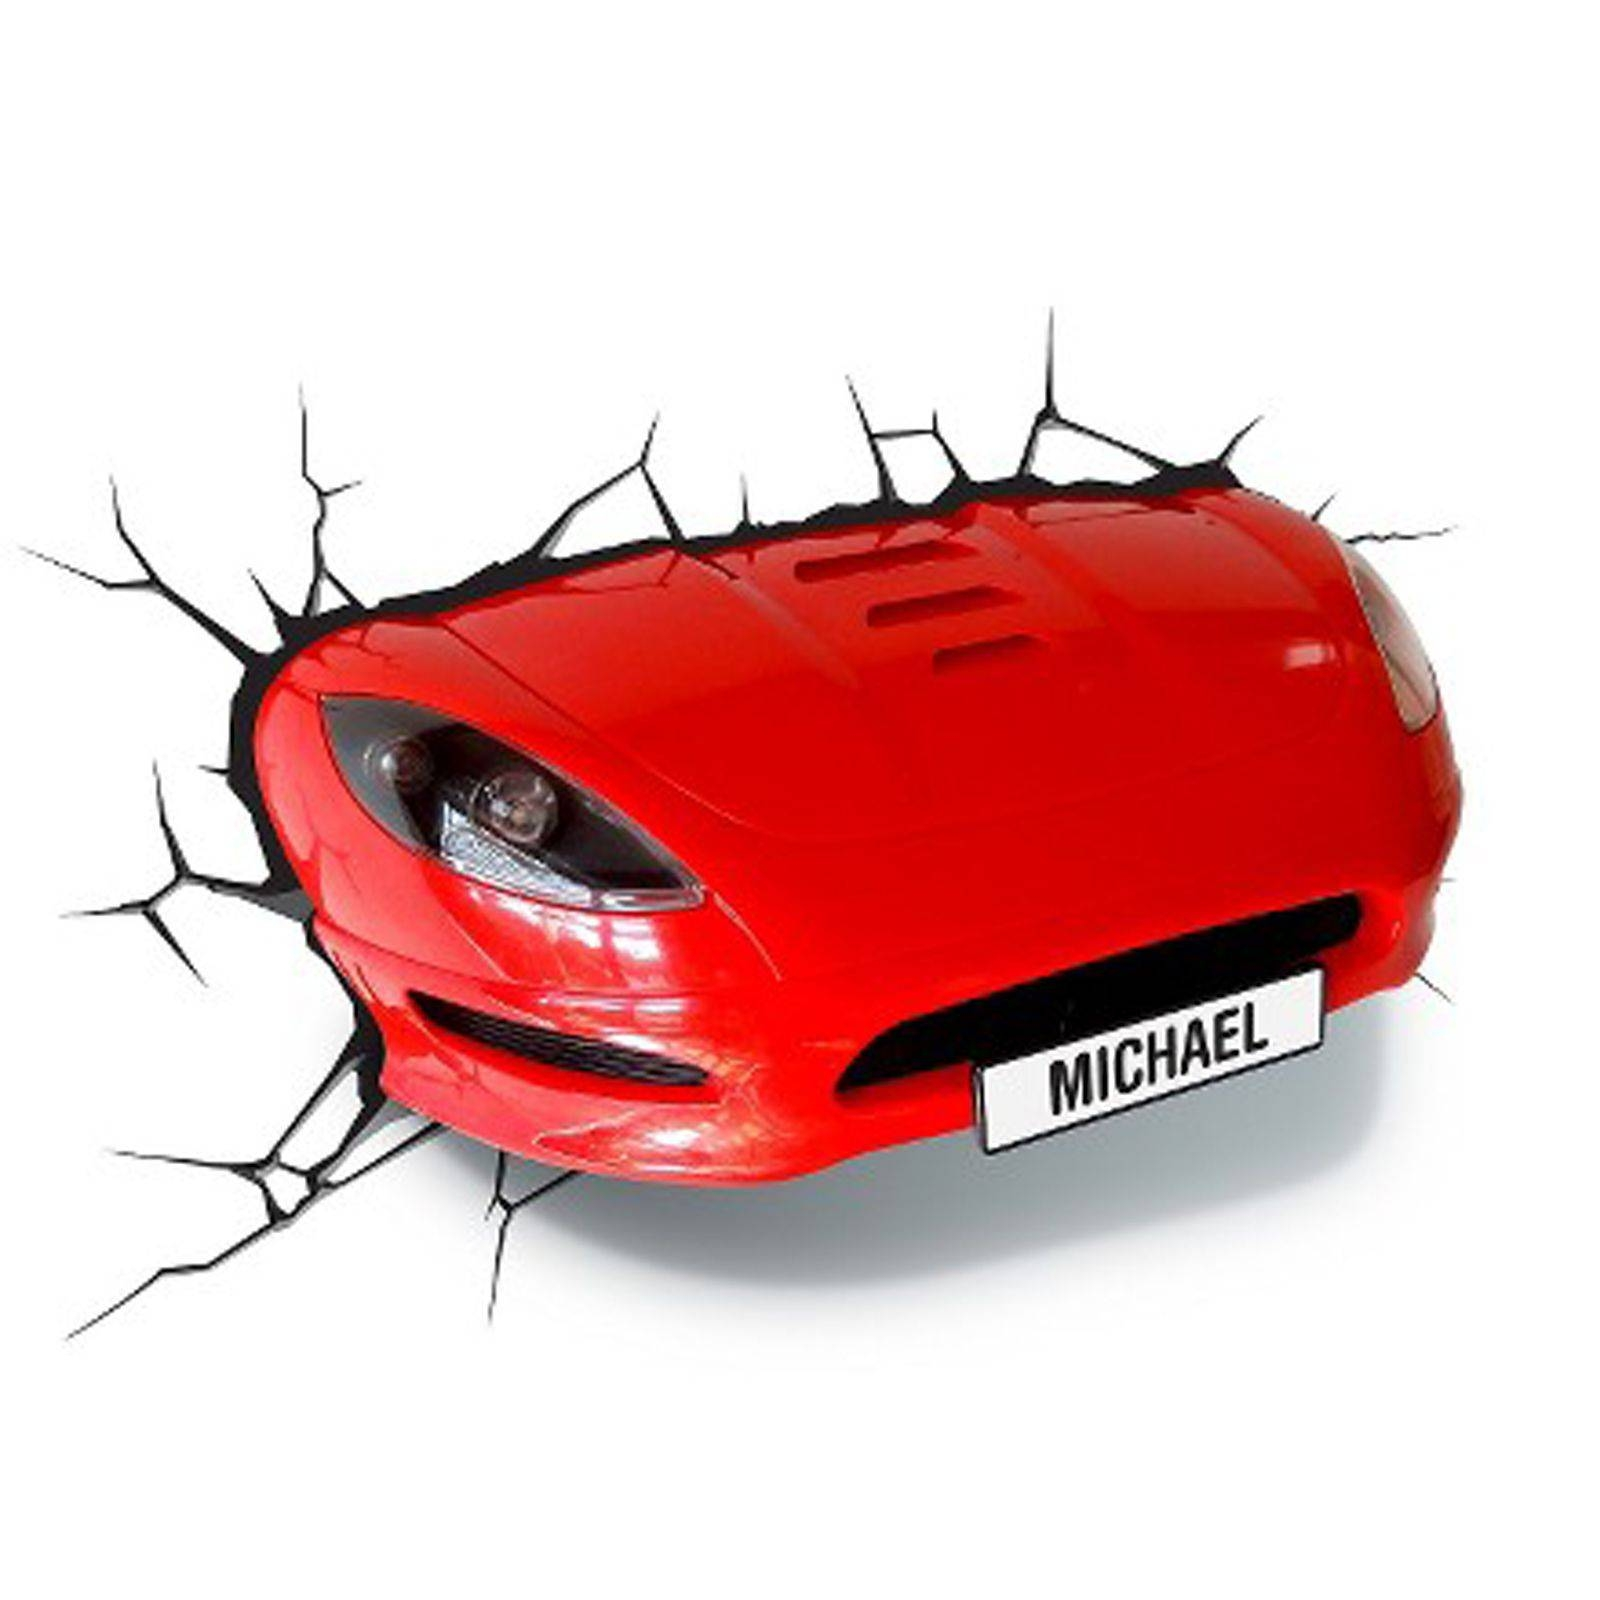 Red Sports Car 3D Effect Wall Light Lamp New Bedroom Decor | Ebay With Regard To Latest Cars 3D Wall Art (Gallery 5 of 20)